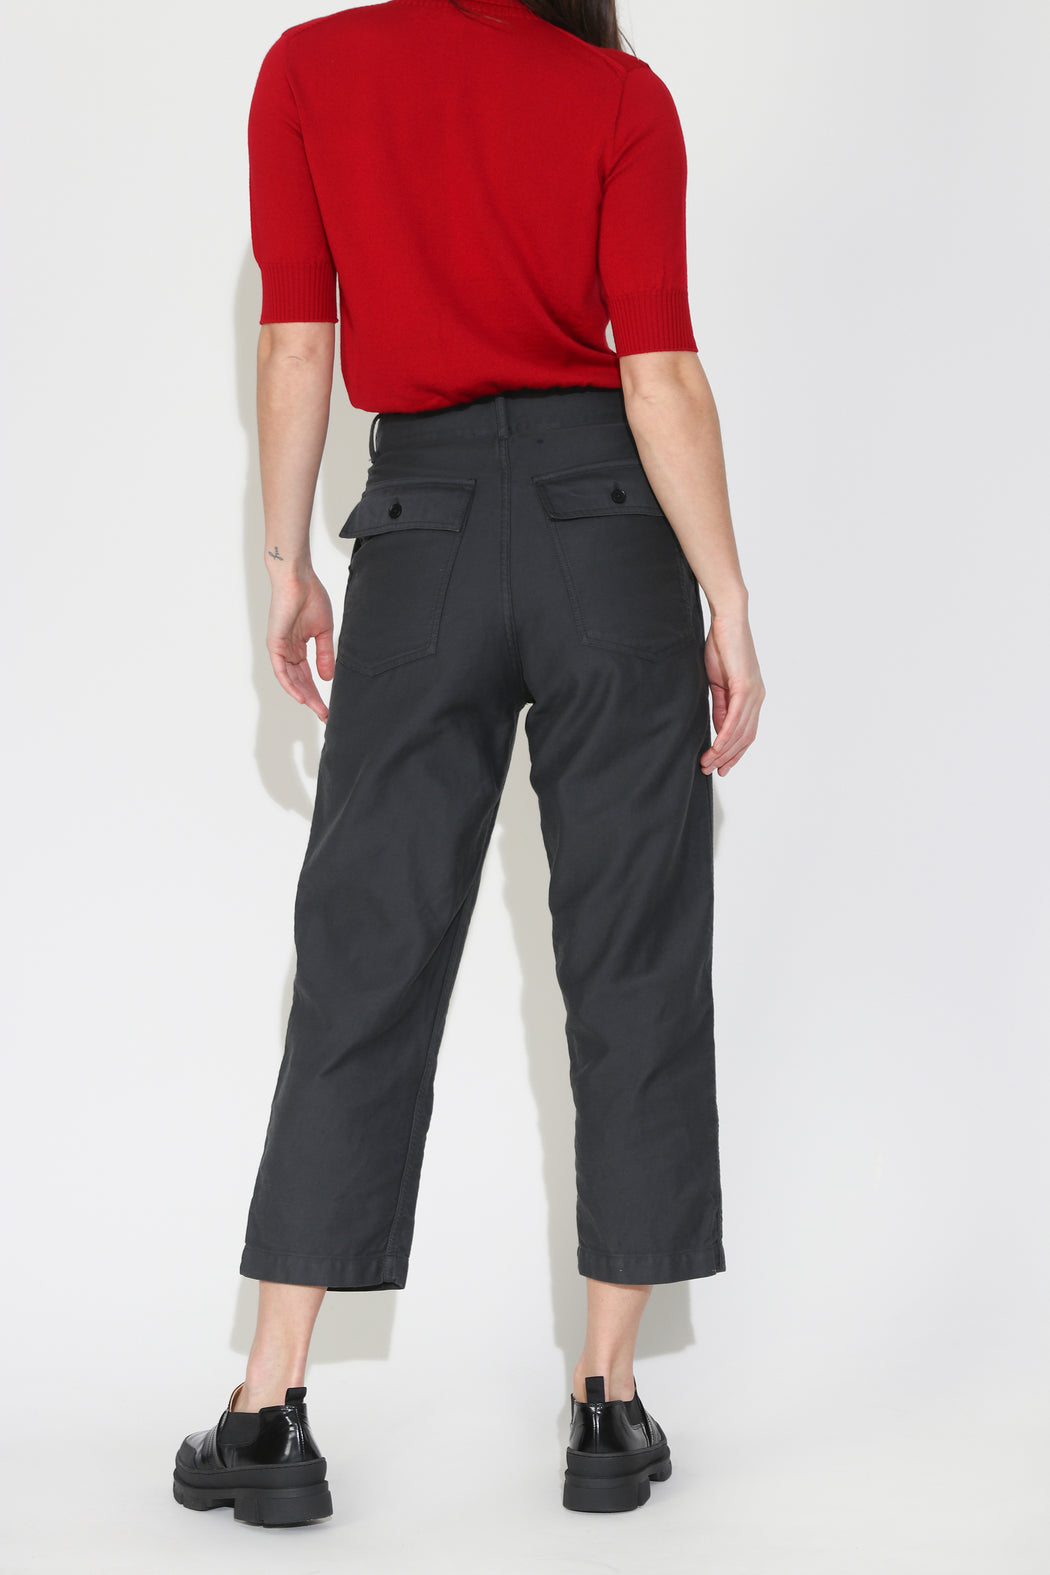 Caron Callahan Howell Pant in Charcoal